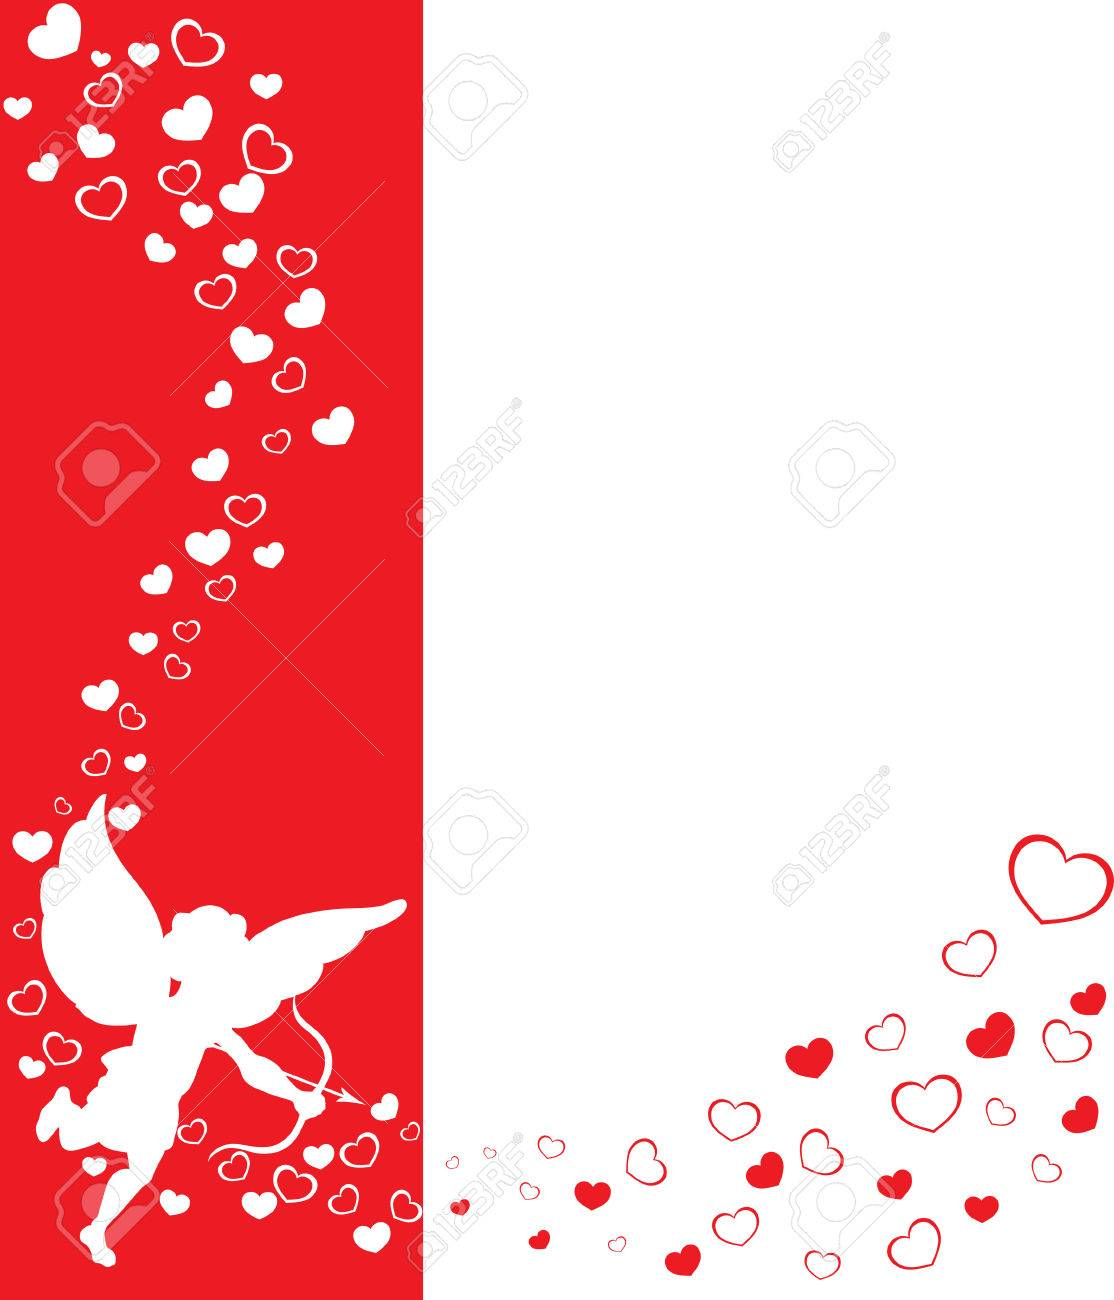 Love Angel Eros On A Red Background With Hearts Stock Photo 1114x1300